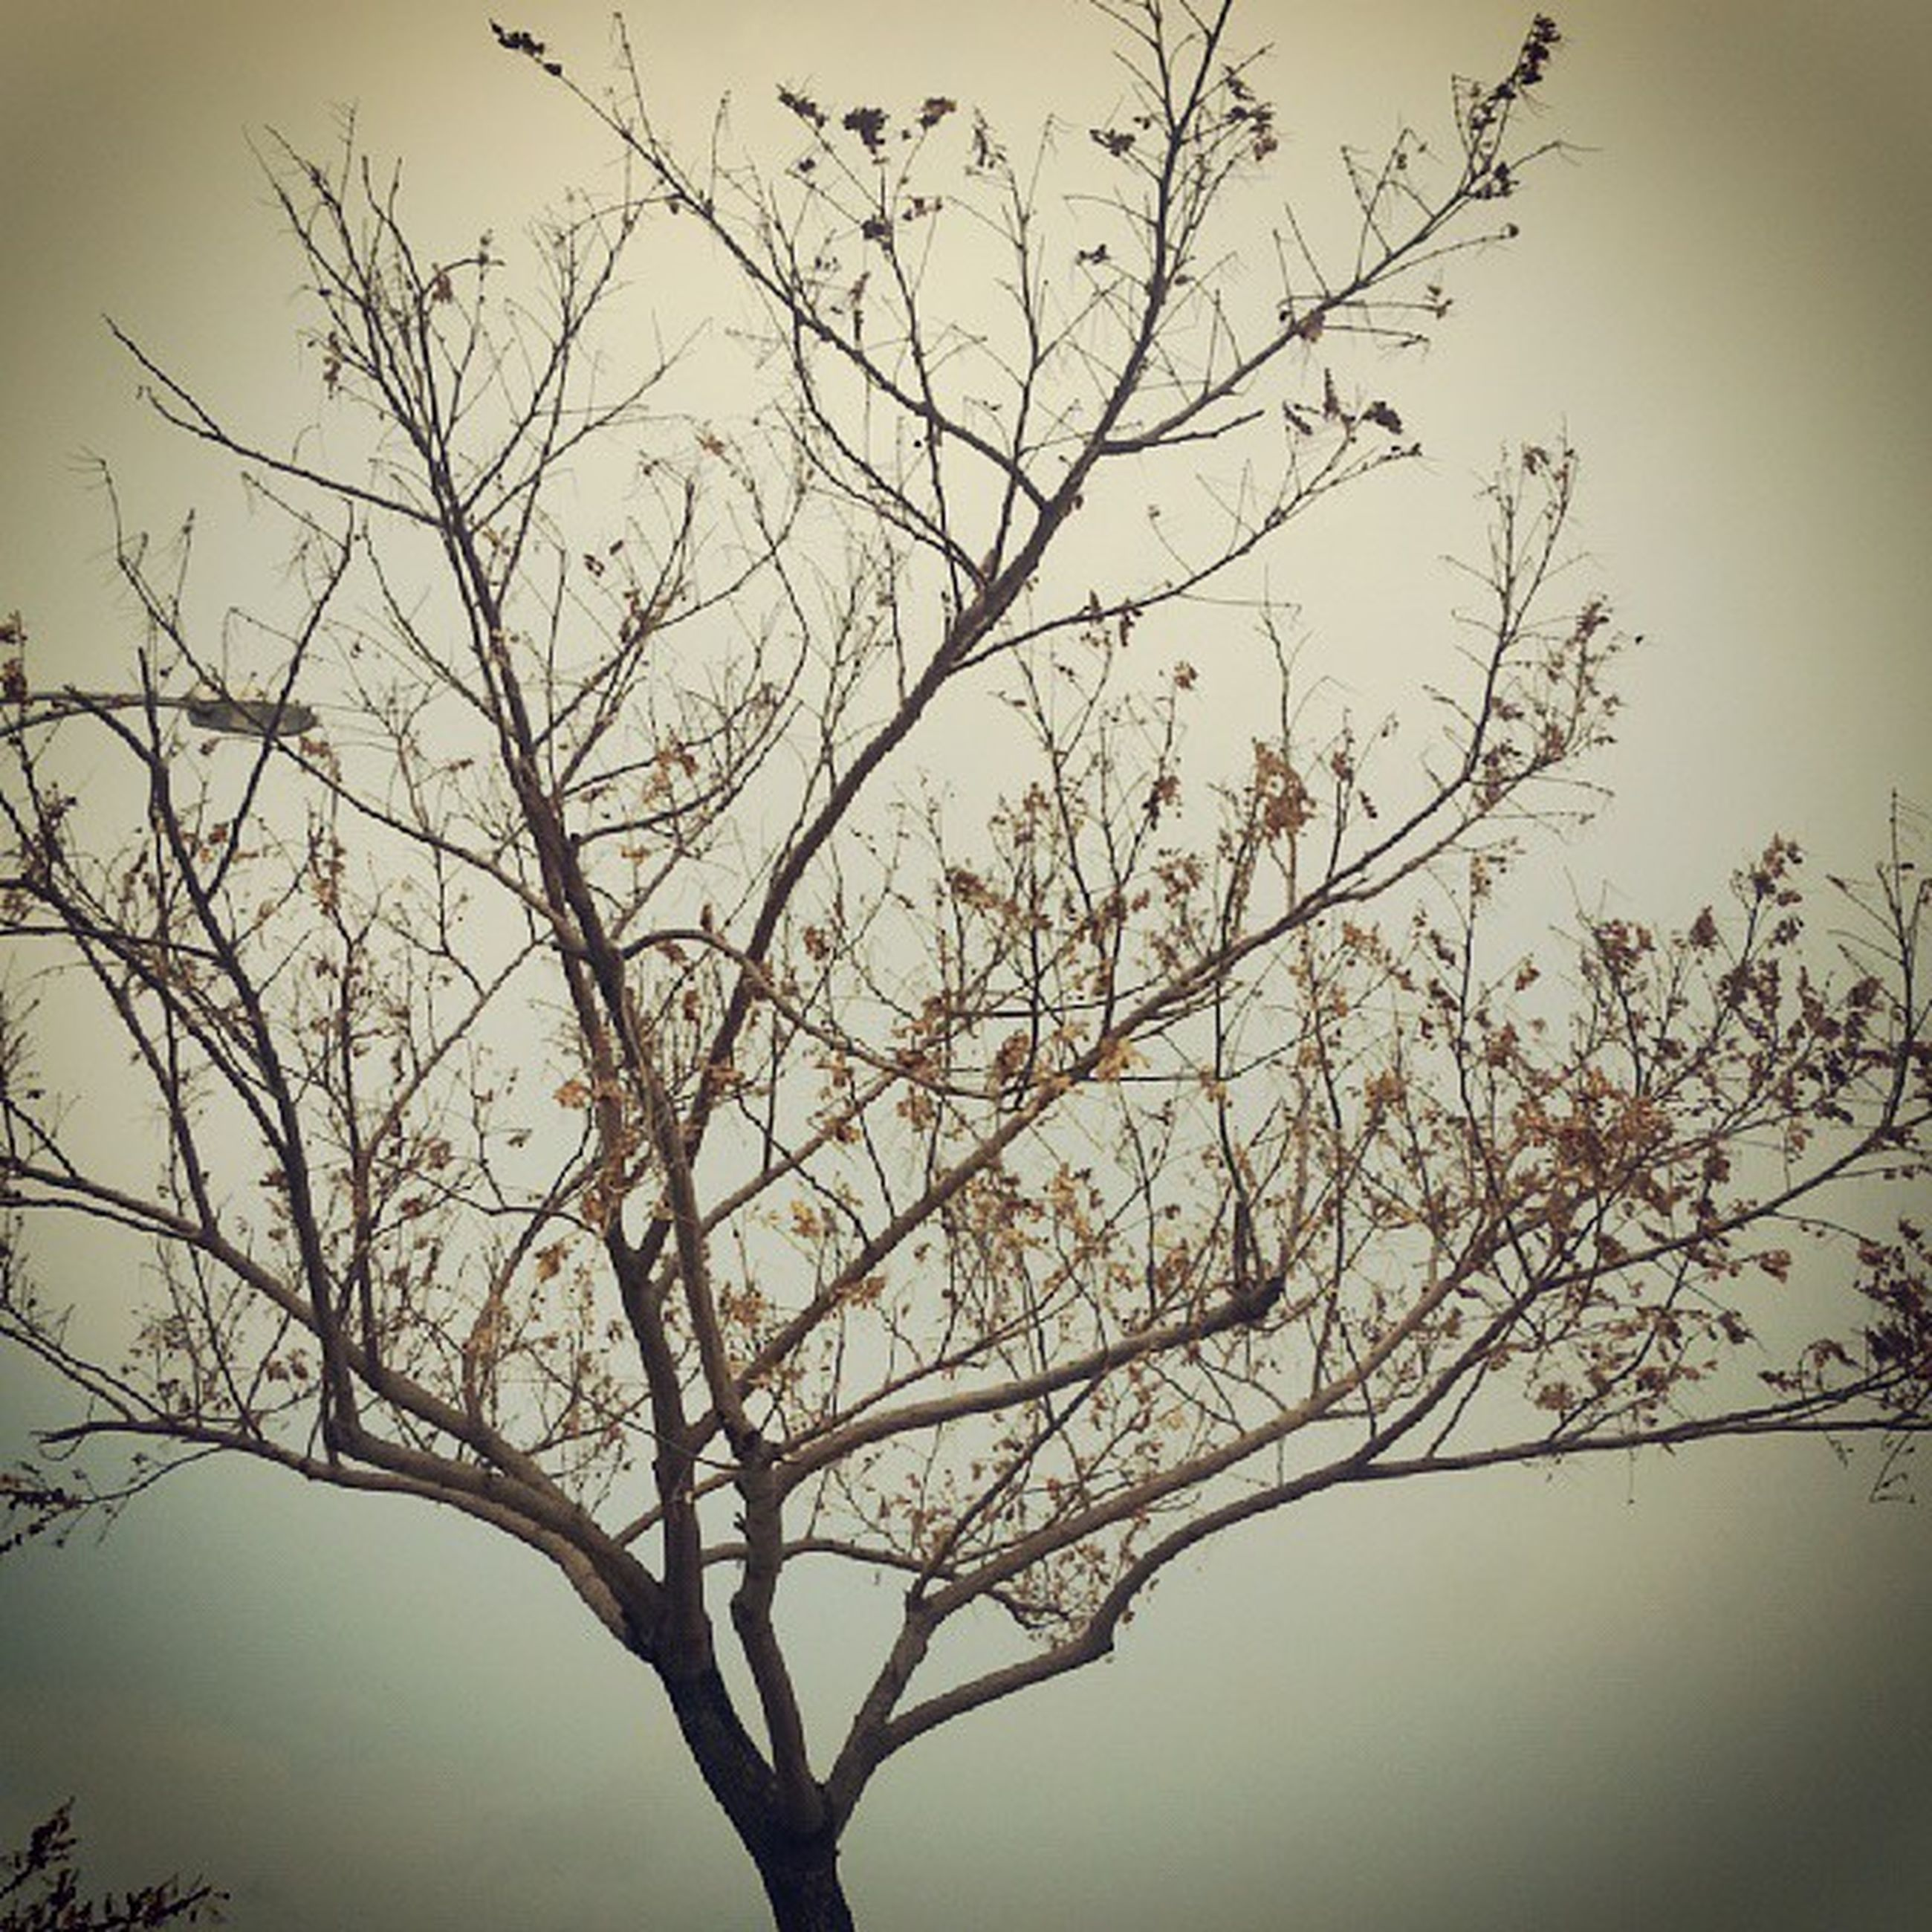 branch, bare tree, tree, low angle view, nature, tranquility, sky, beauty in nature, silhouette, growth, clear sky, scenics, outdoors, twig, no people, tree trunk, tranquil scene, day, dead plant, dusk